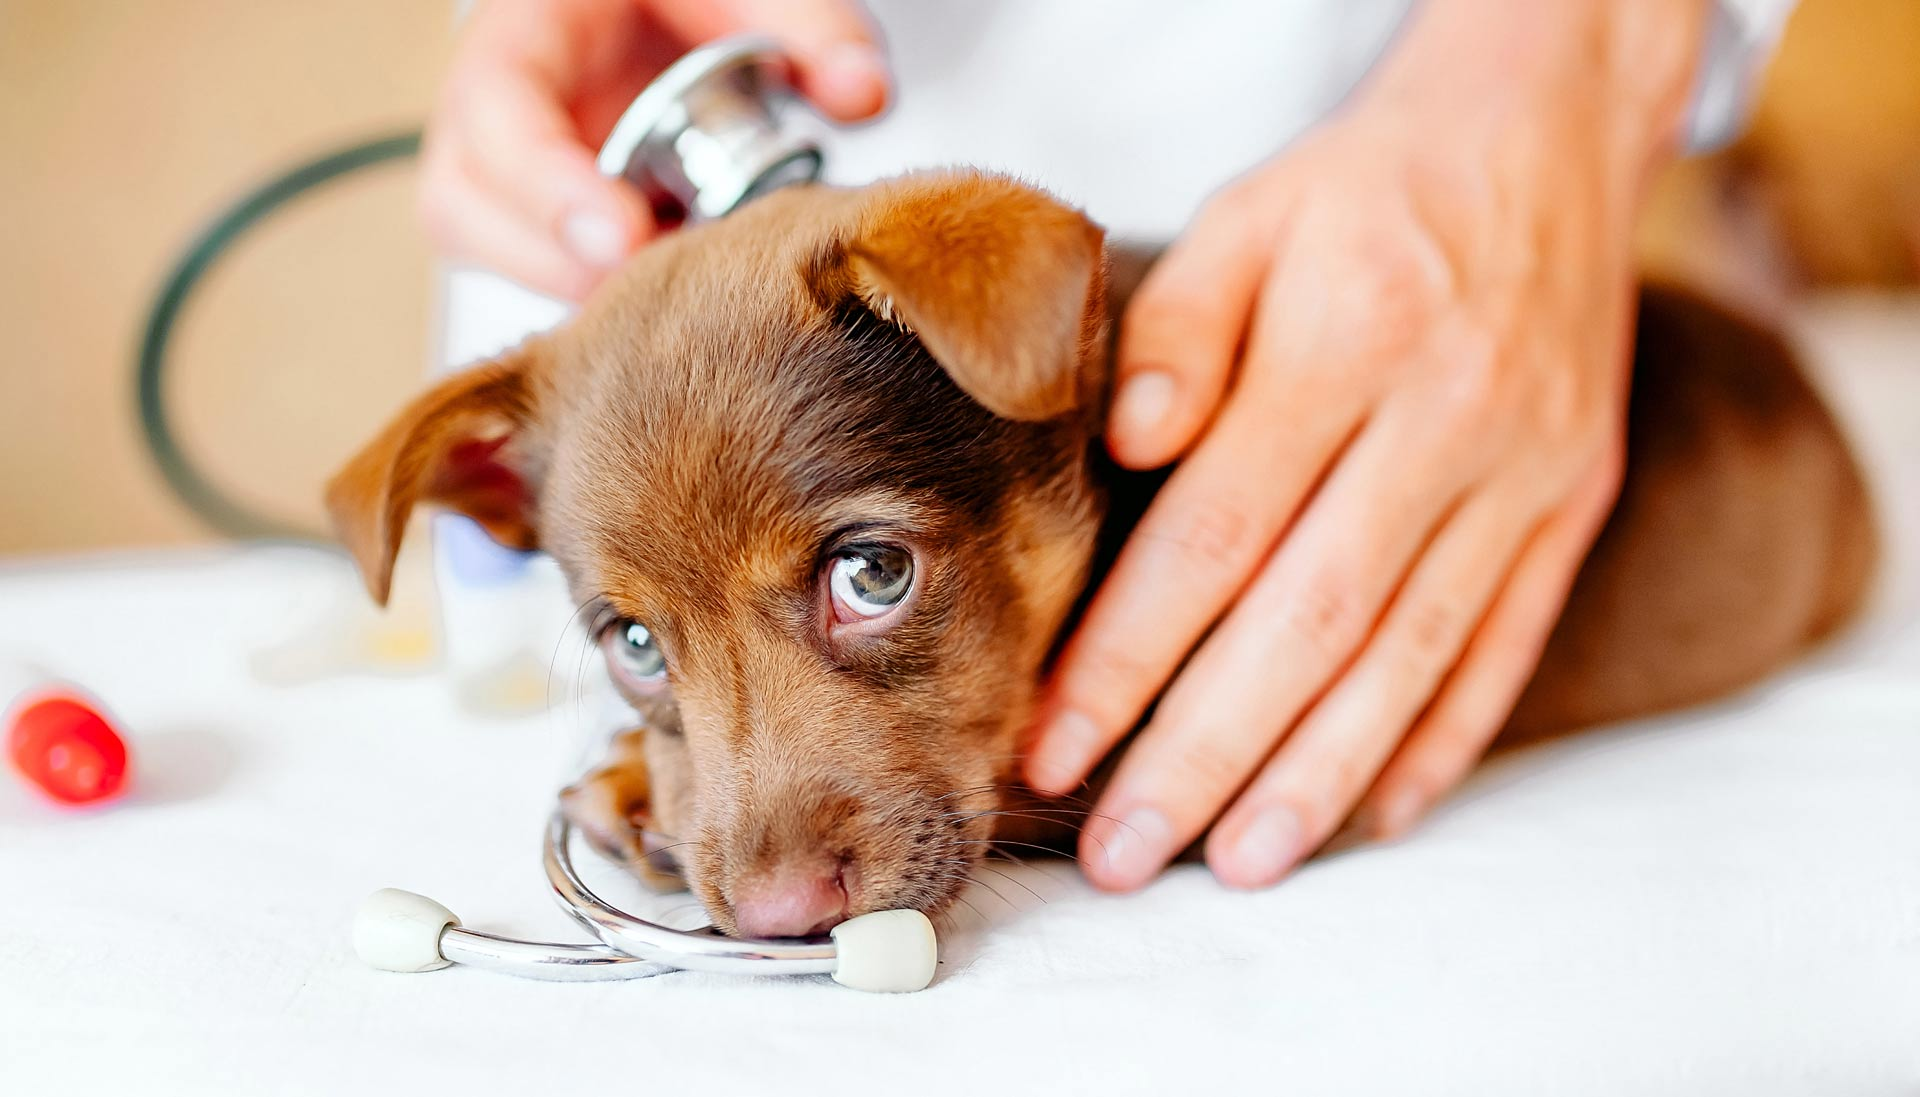 VETERINARY CARE with integrity and heart.